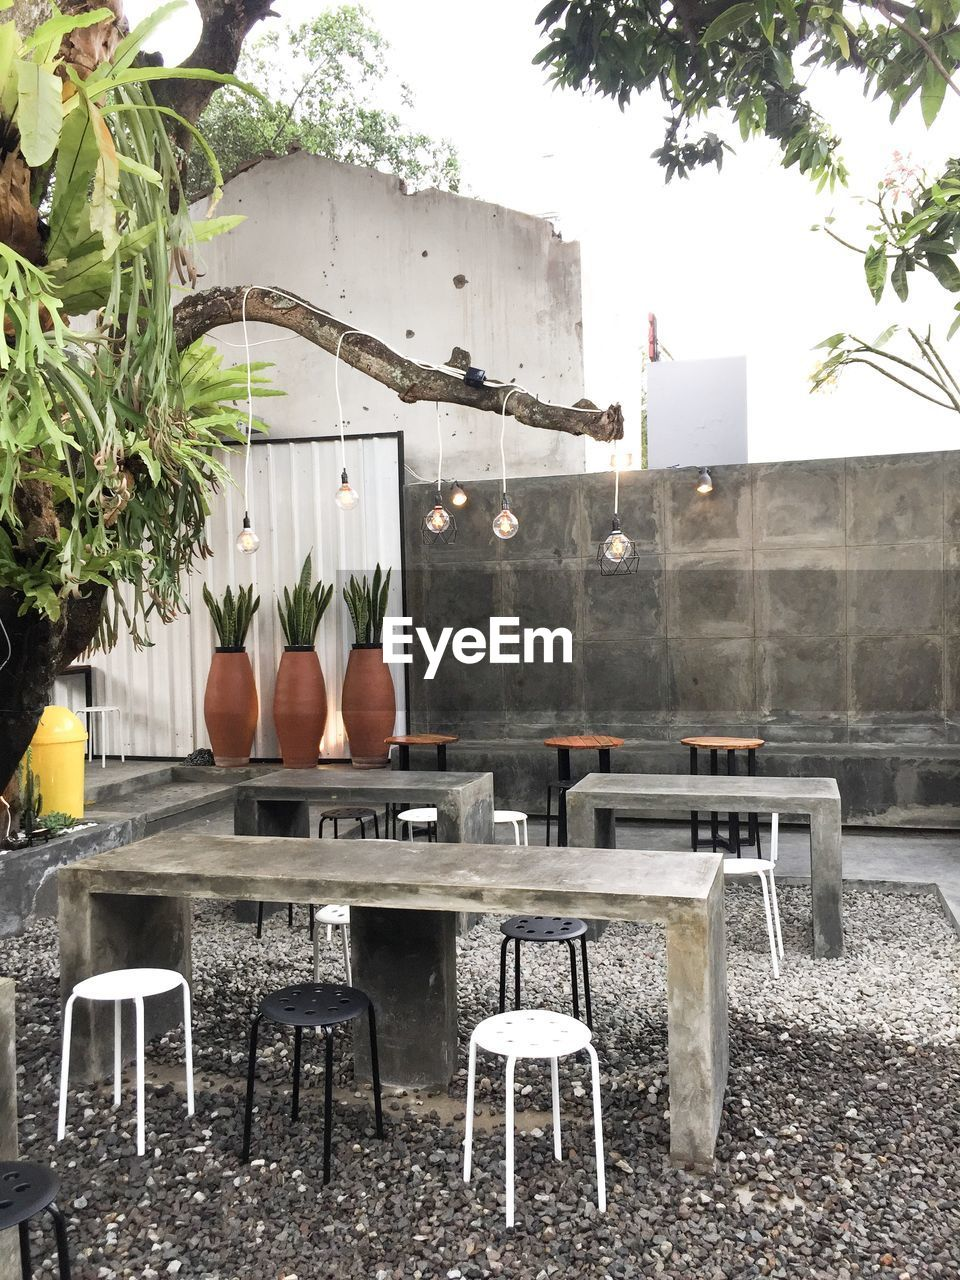 seat, chair, plant, table, food and drink, nature, no people, restaurant, tree, business, day, furniture, absence, empty, food, glass, arrangement, setting, architecture, cafe, outdoors